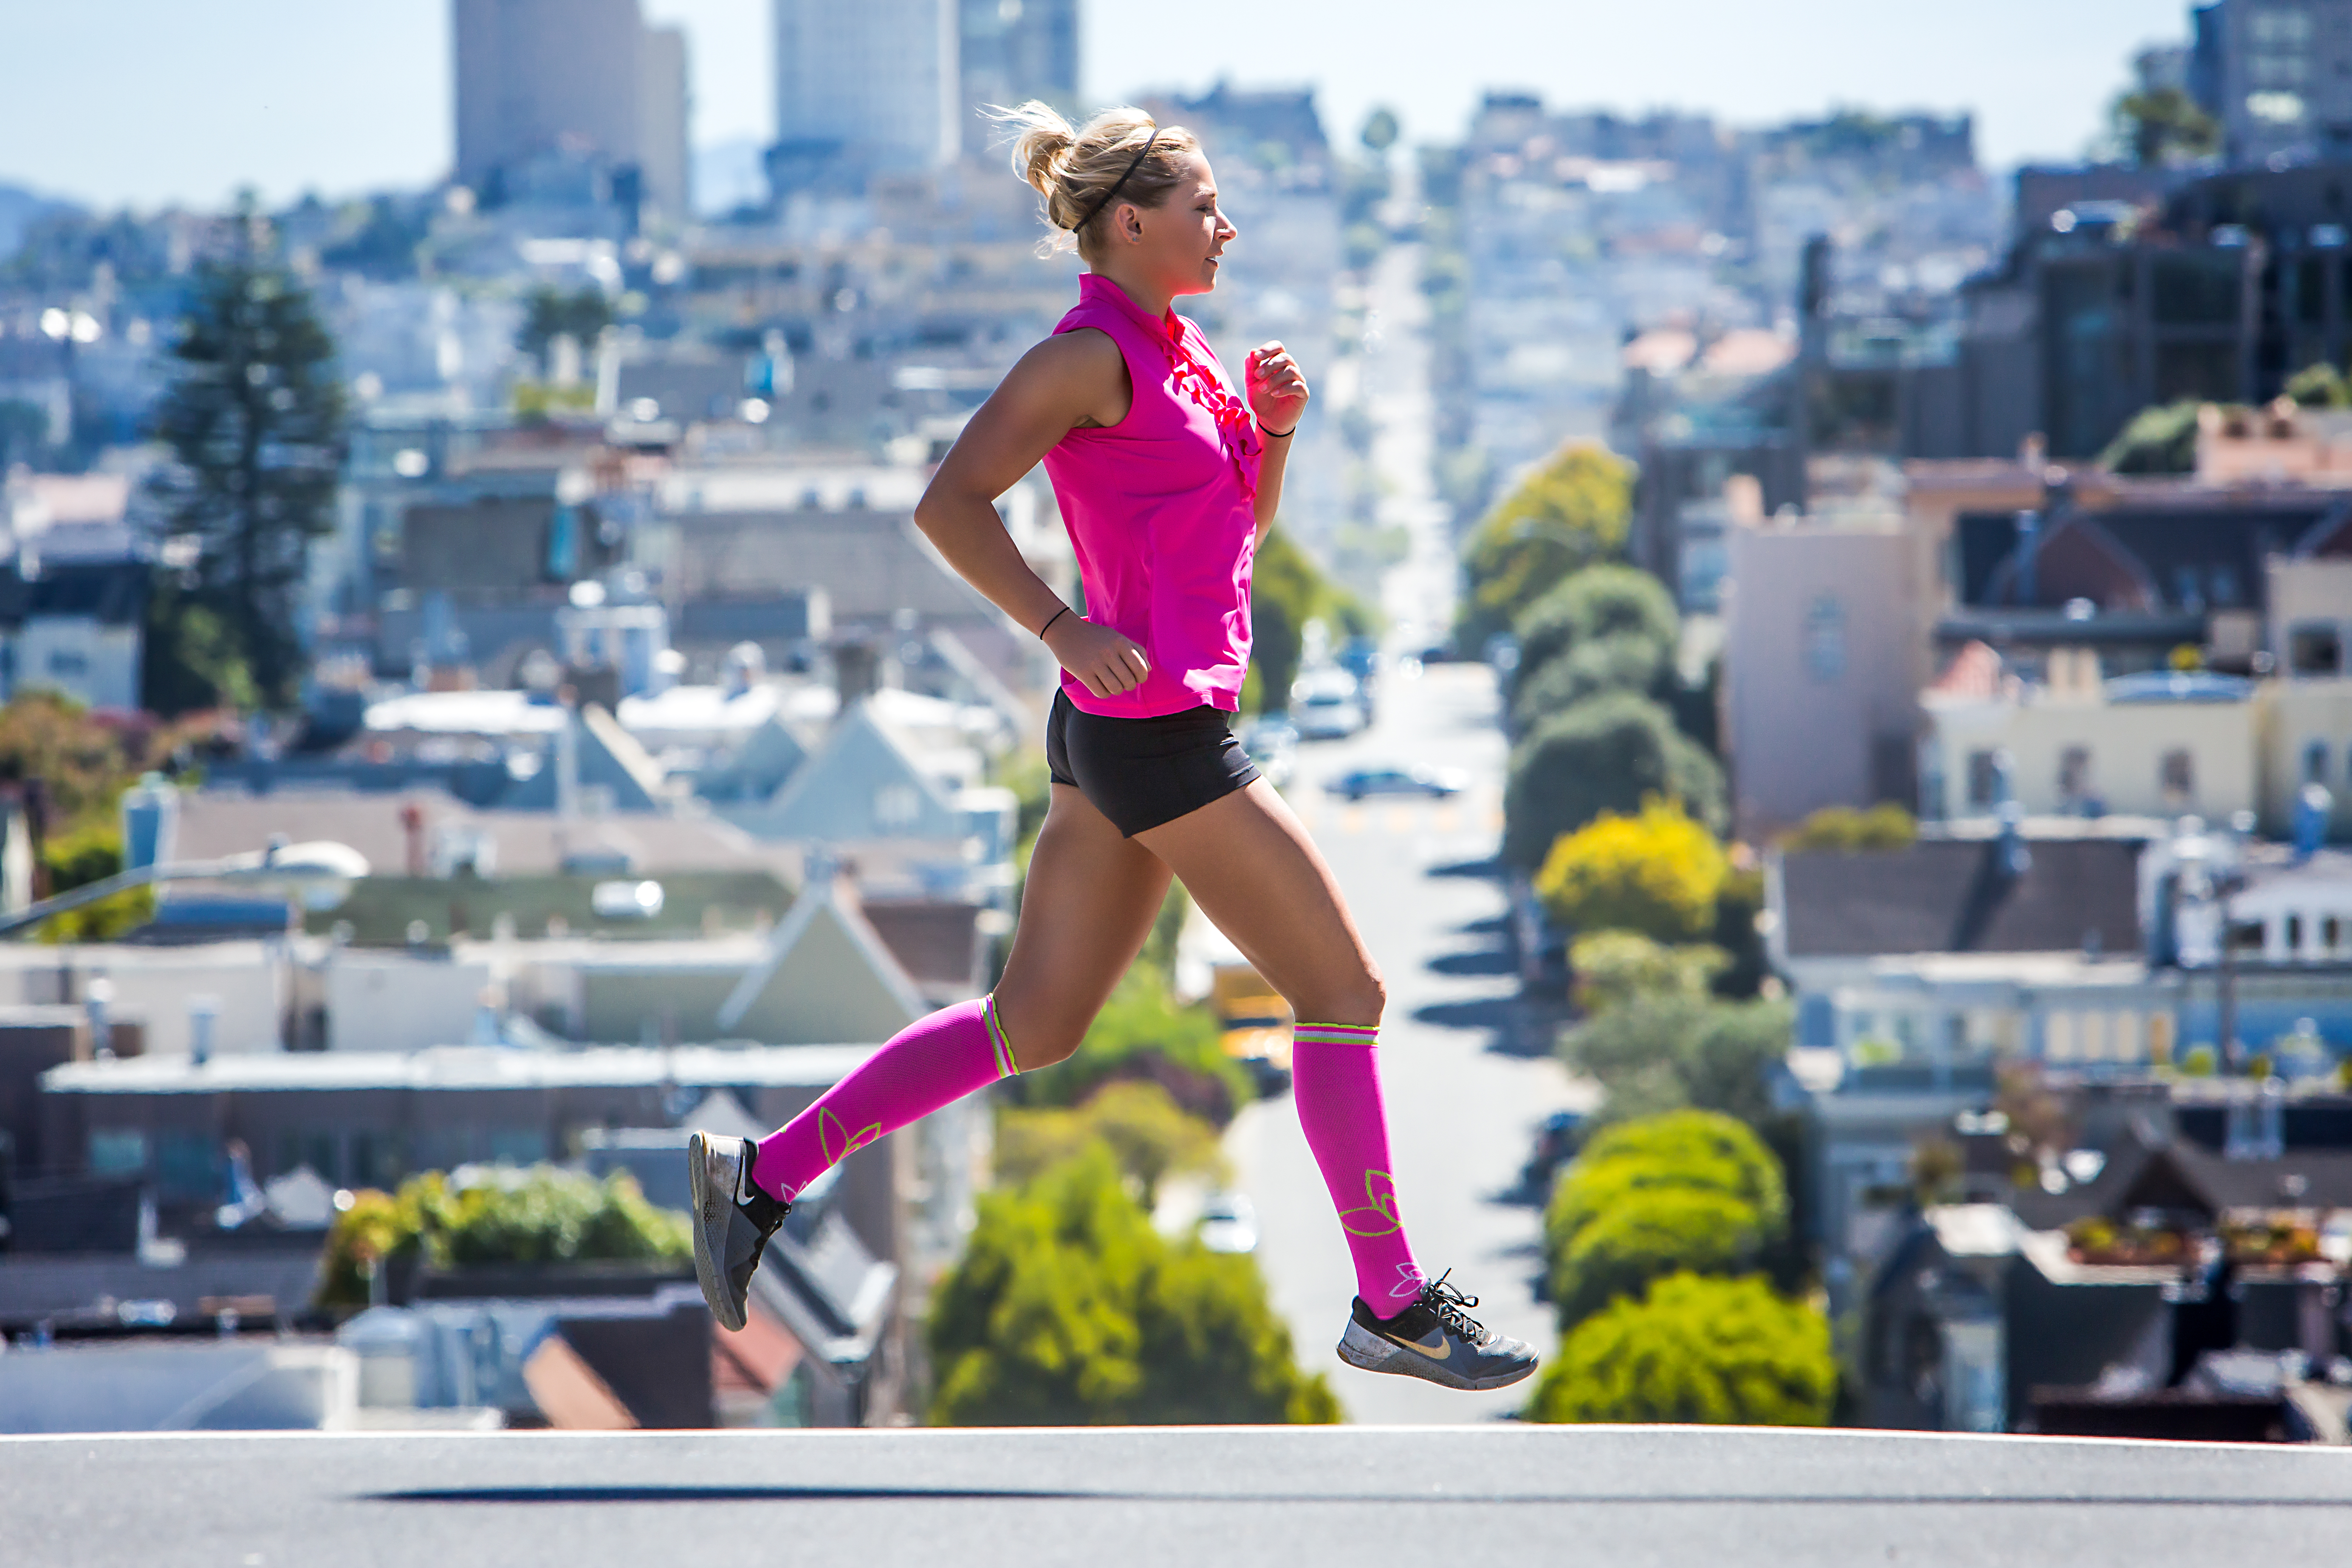 American Made Fashion Compression Socks from Lily Trotter - Save 25% off with code USALOVE